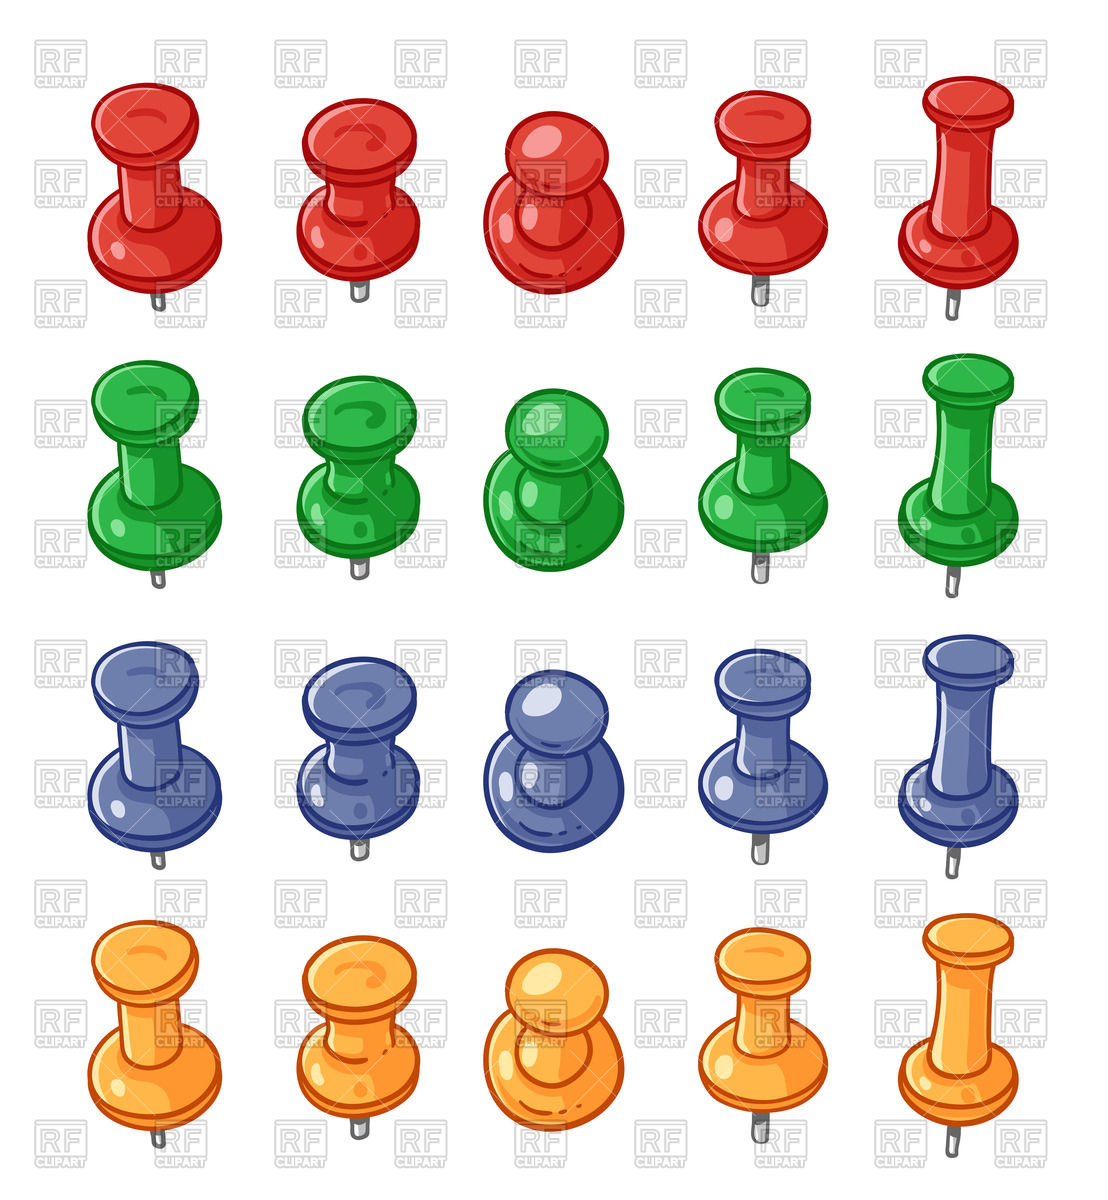 Different sizes clipart. Set of colorful push